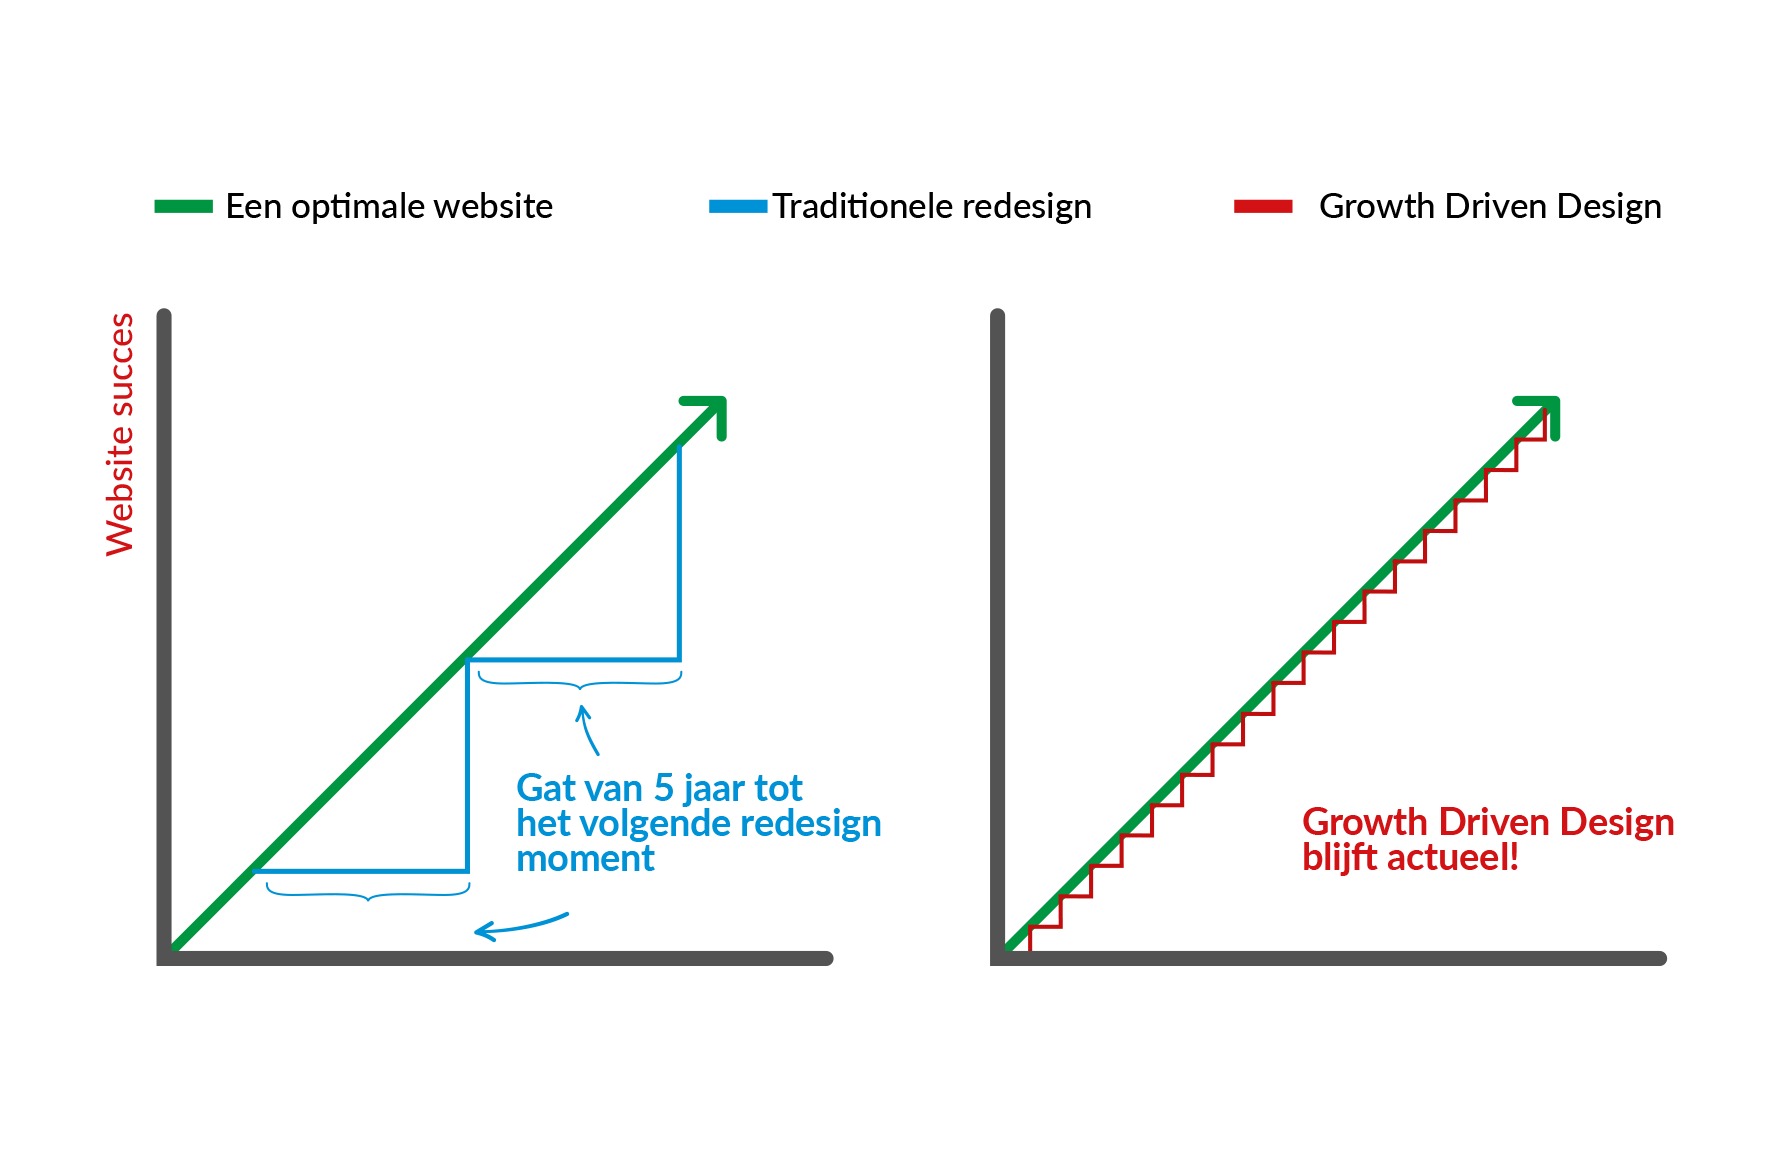 Wat is Growth Driven Design (GDD) precies?